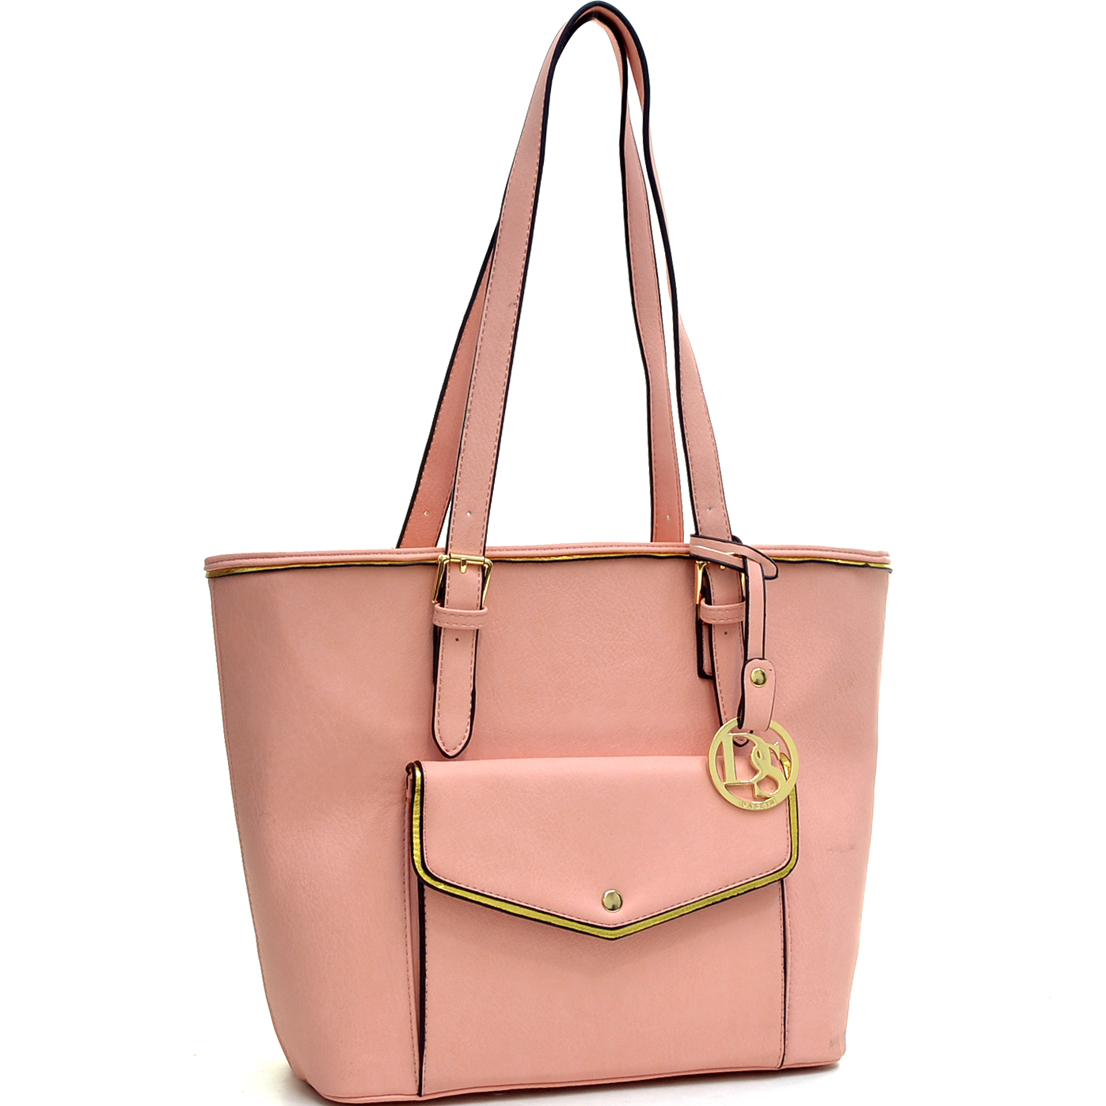 Faux Leather Envelope Front Tote Bag with Emblem